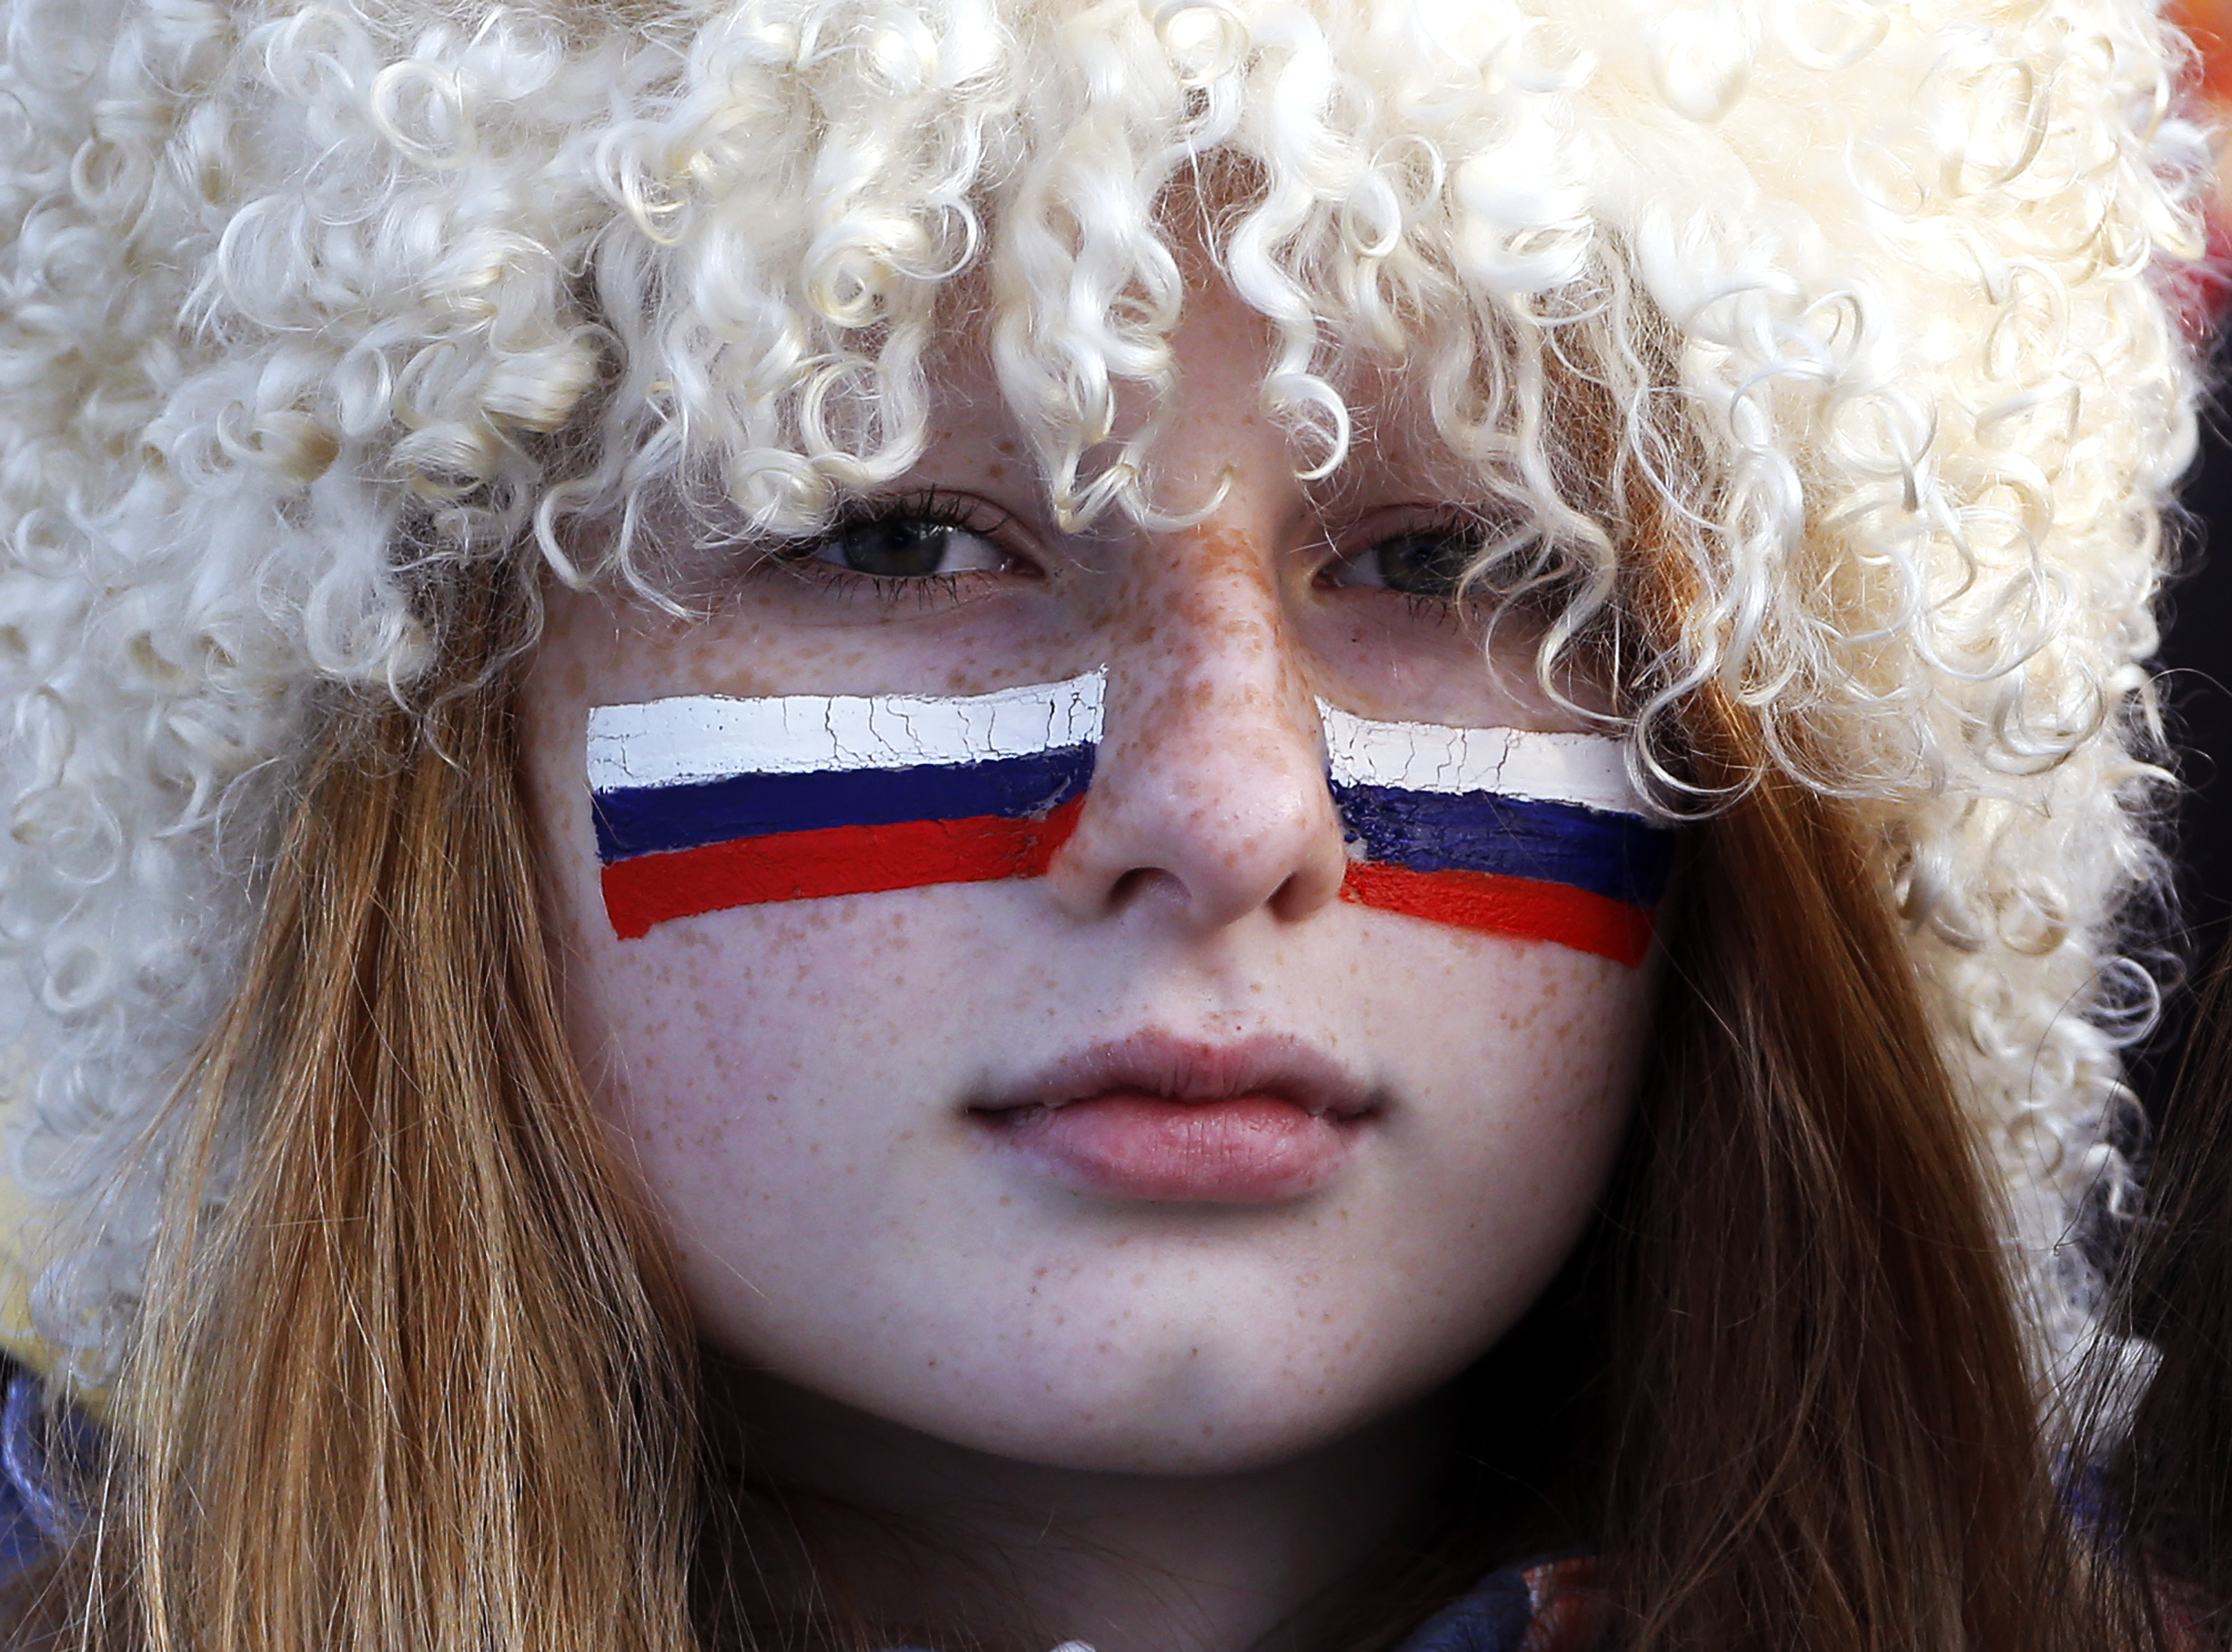 A Russian fan with her face painted with the Russian flag watches the men's quarter-finals ice hockey game between Russia and Finland. Russia was eliminated from the men's ice hockey competition at the Sochi Games on Wednesday following a 3-1 quarter-final loss to Finland.